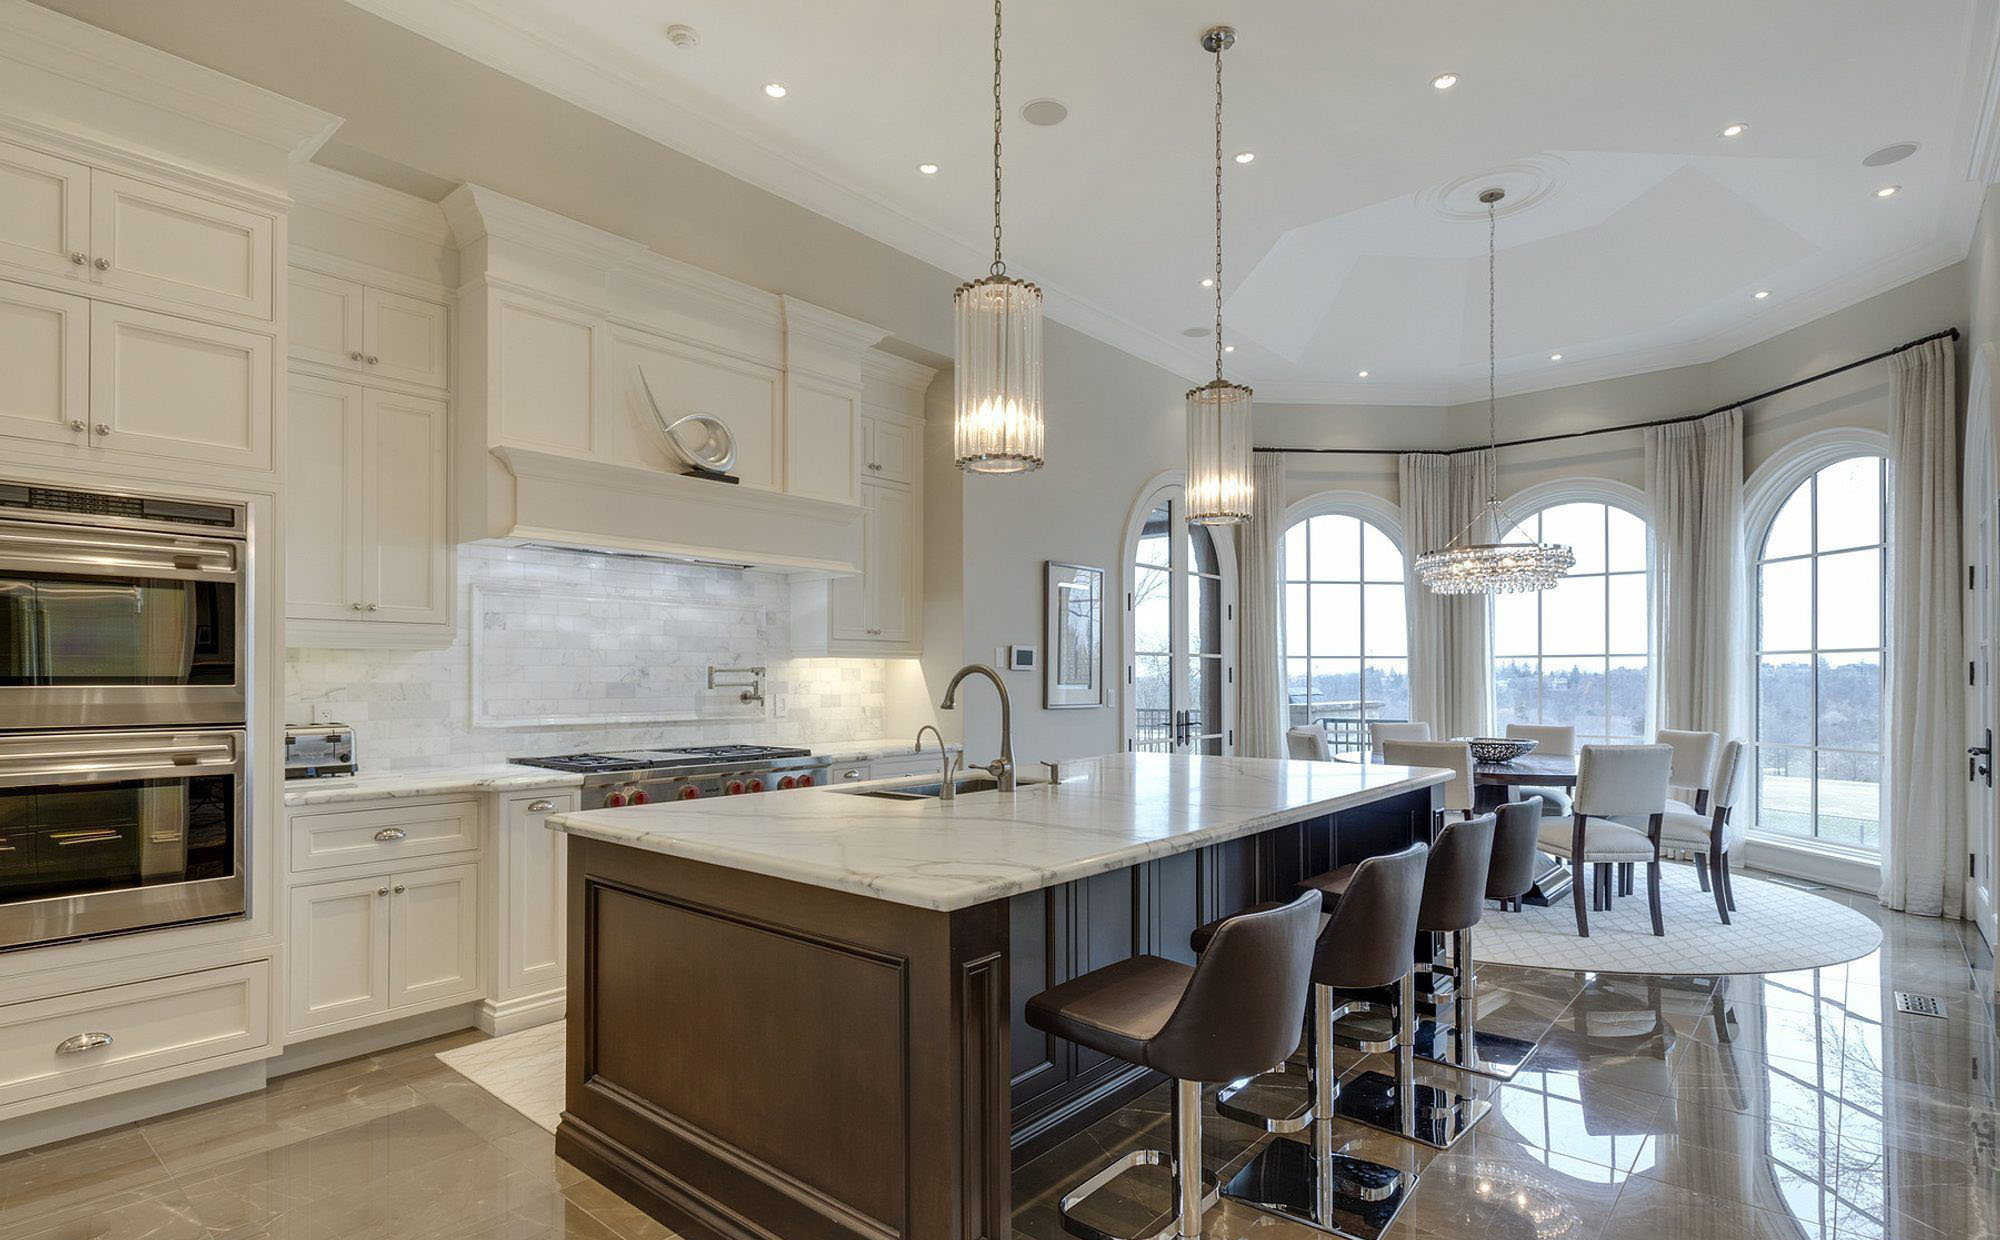 Beautiful luxury kitchen featuring cream colored cabinets, marble counter and backsplash with a deep brown island.